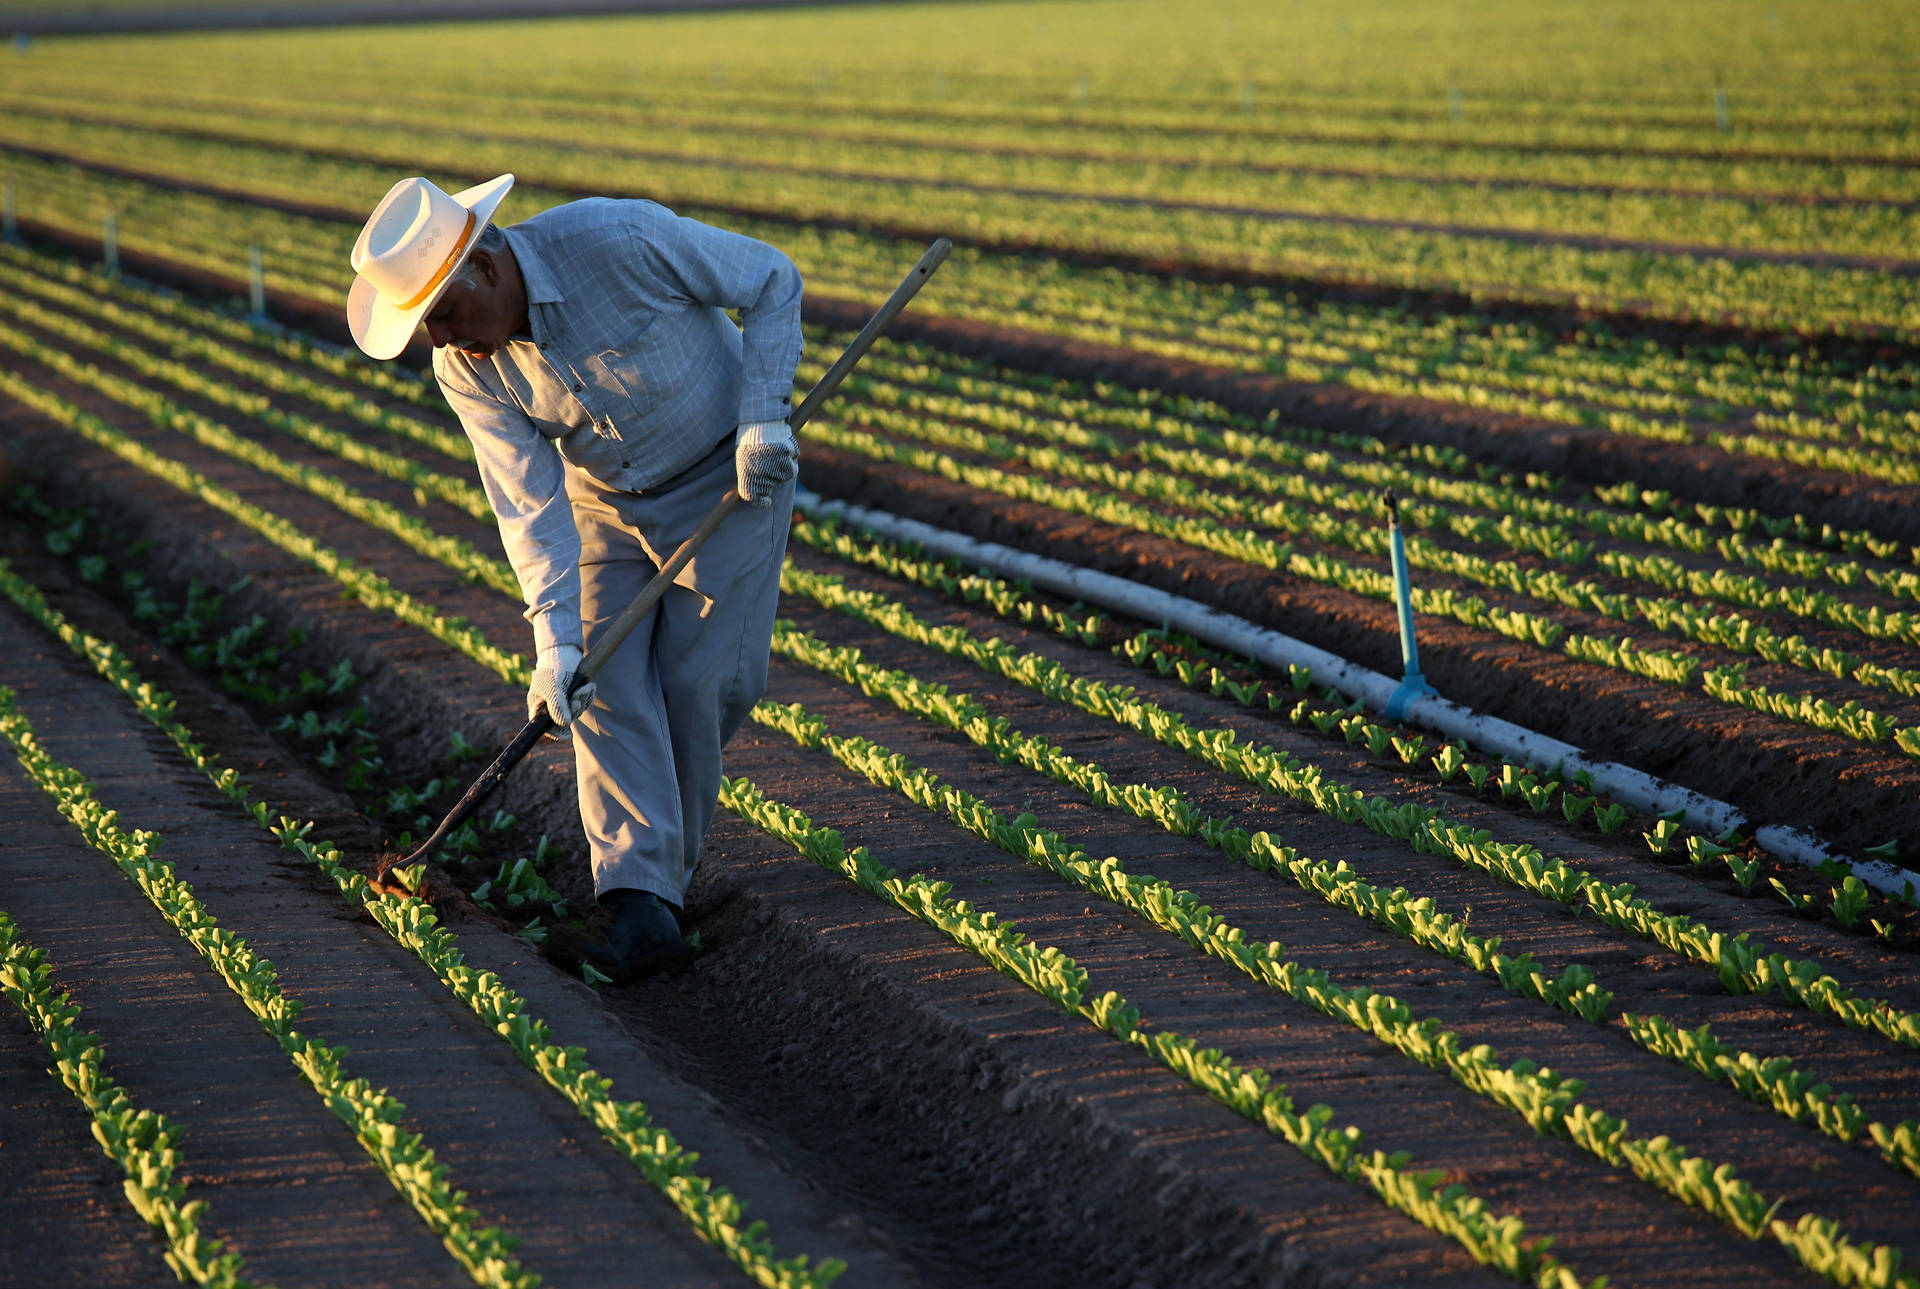 A Mexican farmworker cultivates lettuce in Holtville. 'It's estimated by the U.S. Department of Agriculture that at least 50 percent of those who do the harvesting are undocumented,' says UCLA Anderson senior economist Jerry Nickelsburg. 'If they're not there, who's going to pick the crops?' John Moore/Getty Images